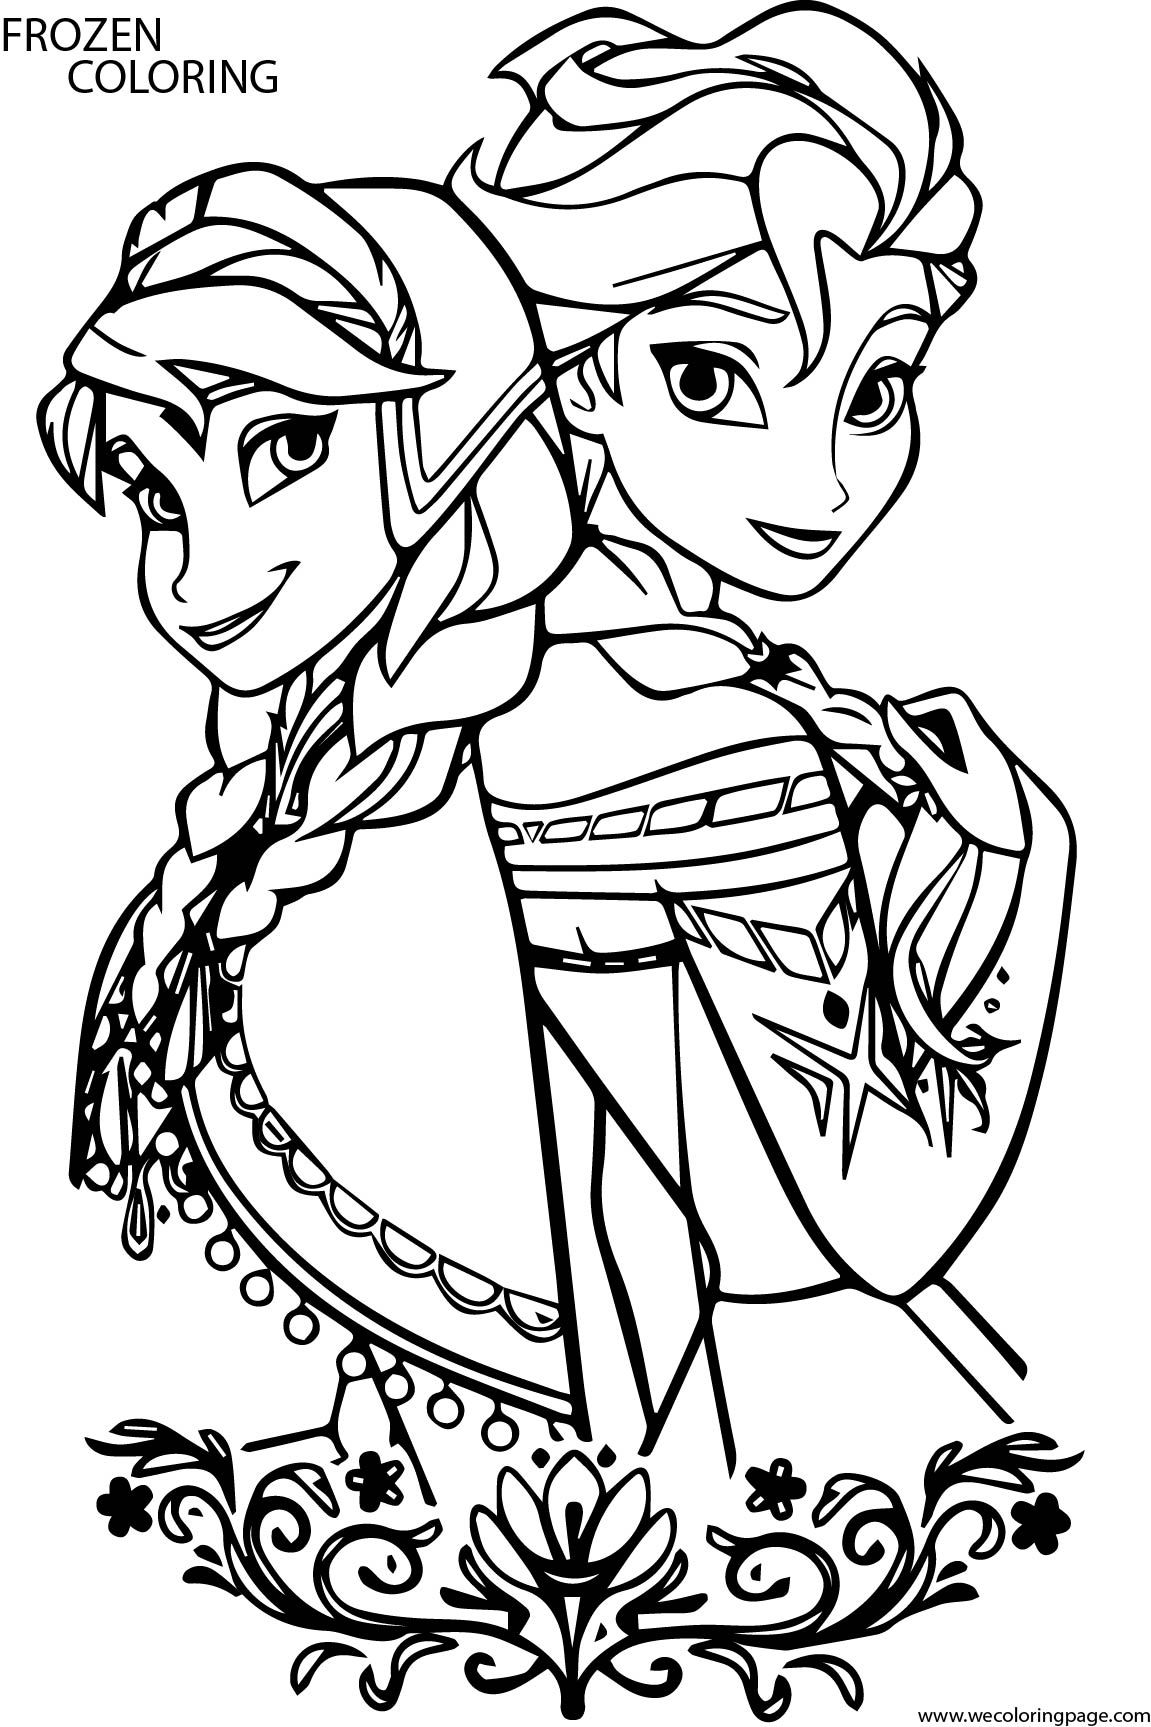 Wecoloringpage frozen for Frozen coloring pages free